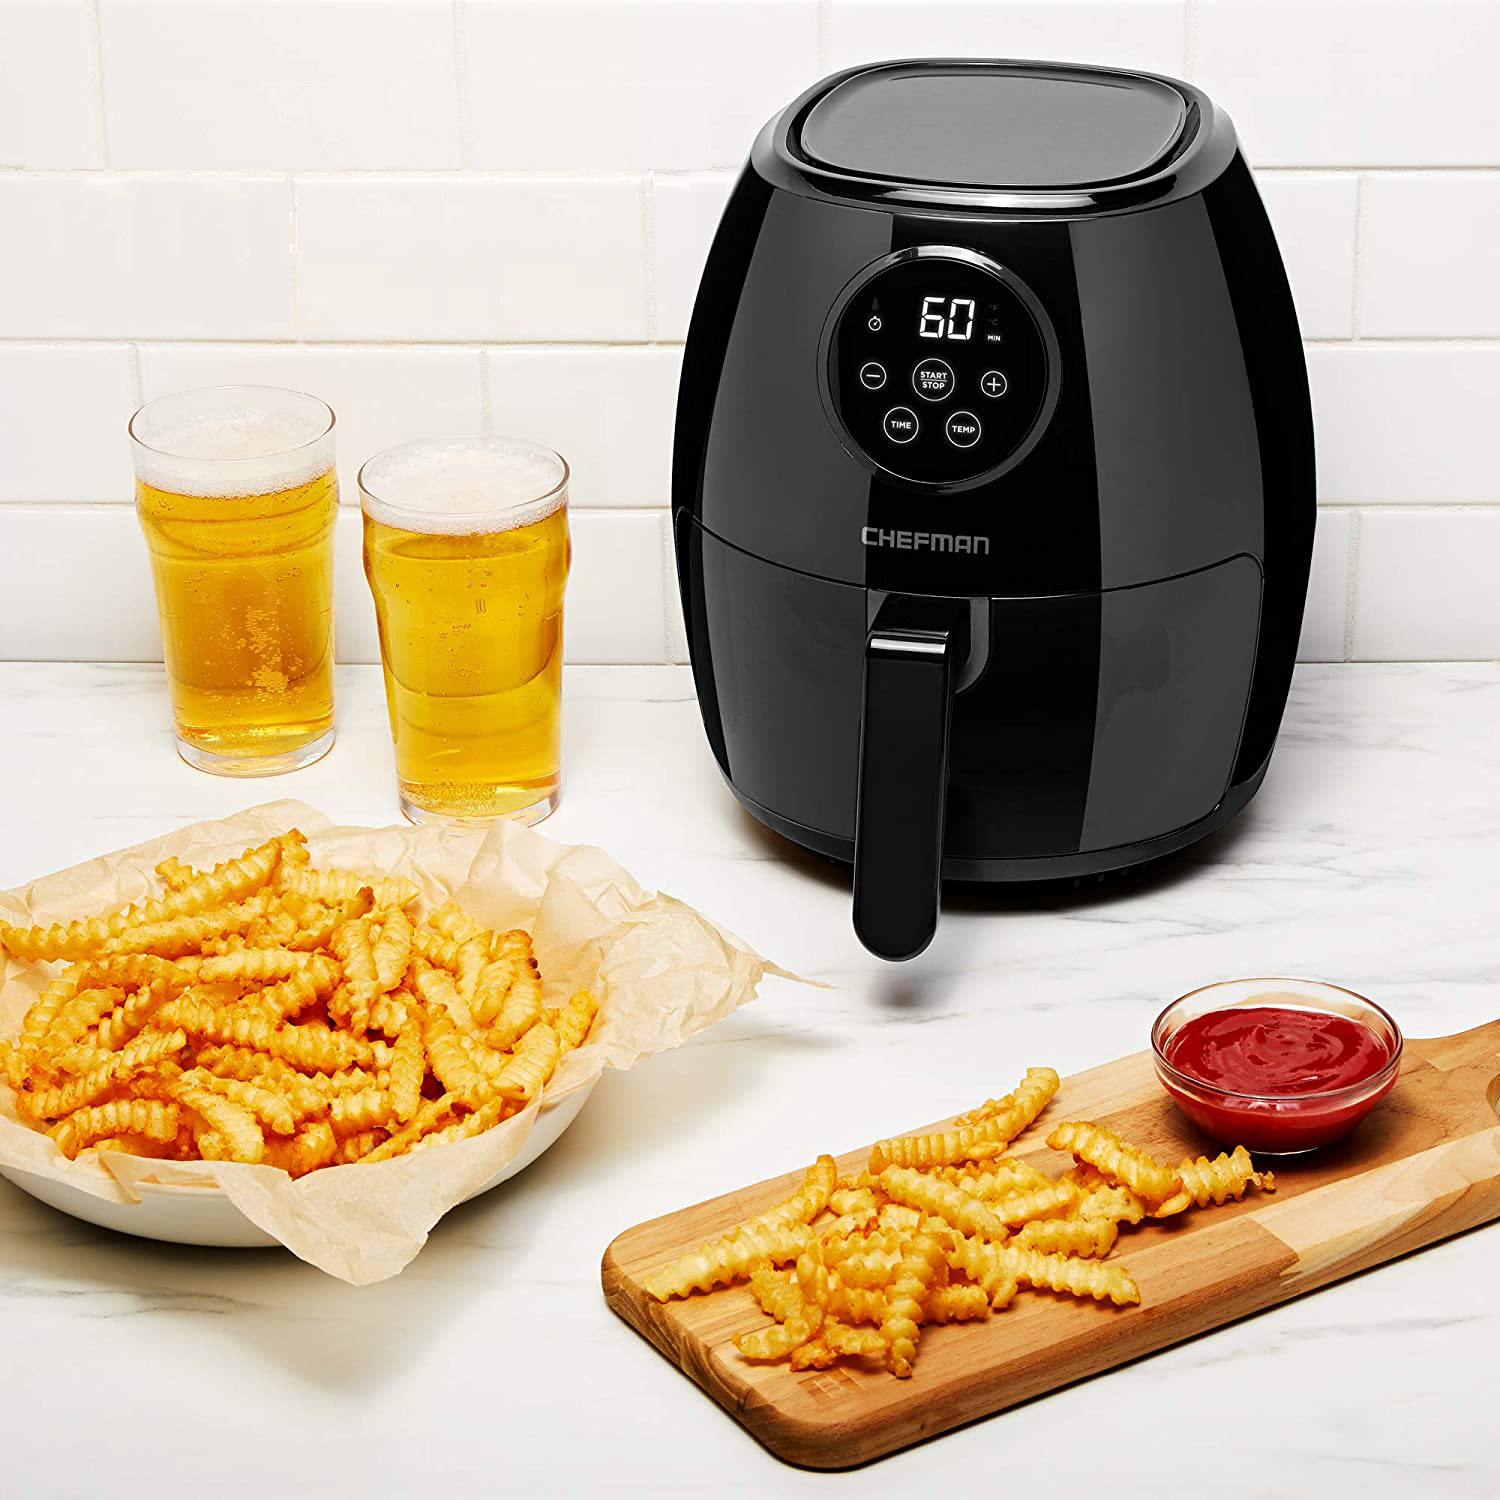 An airfryer appliance next to a plate of curly fries and two mugs of beer